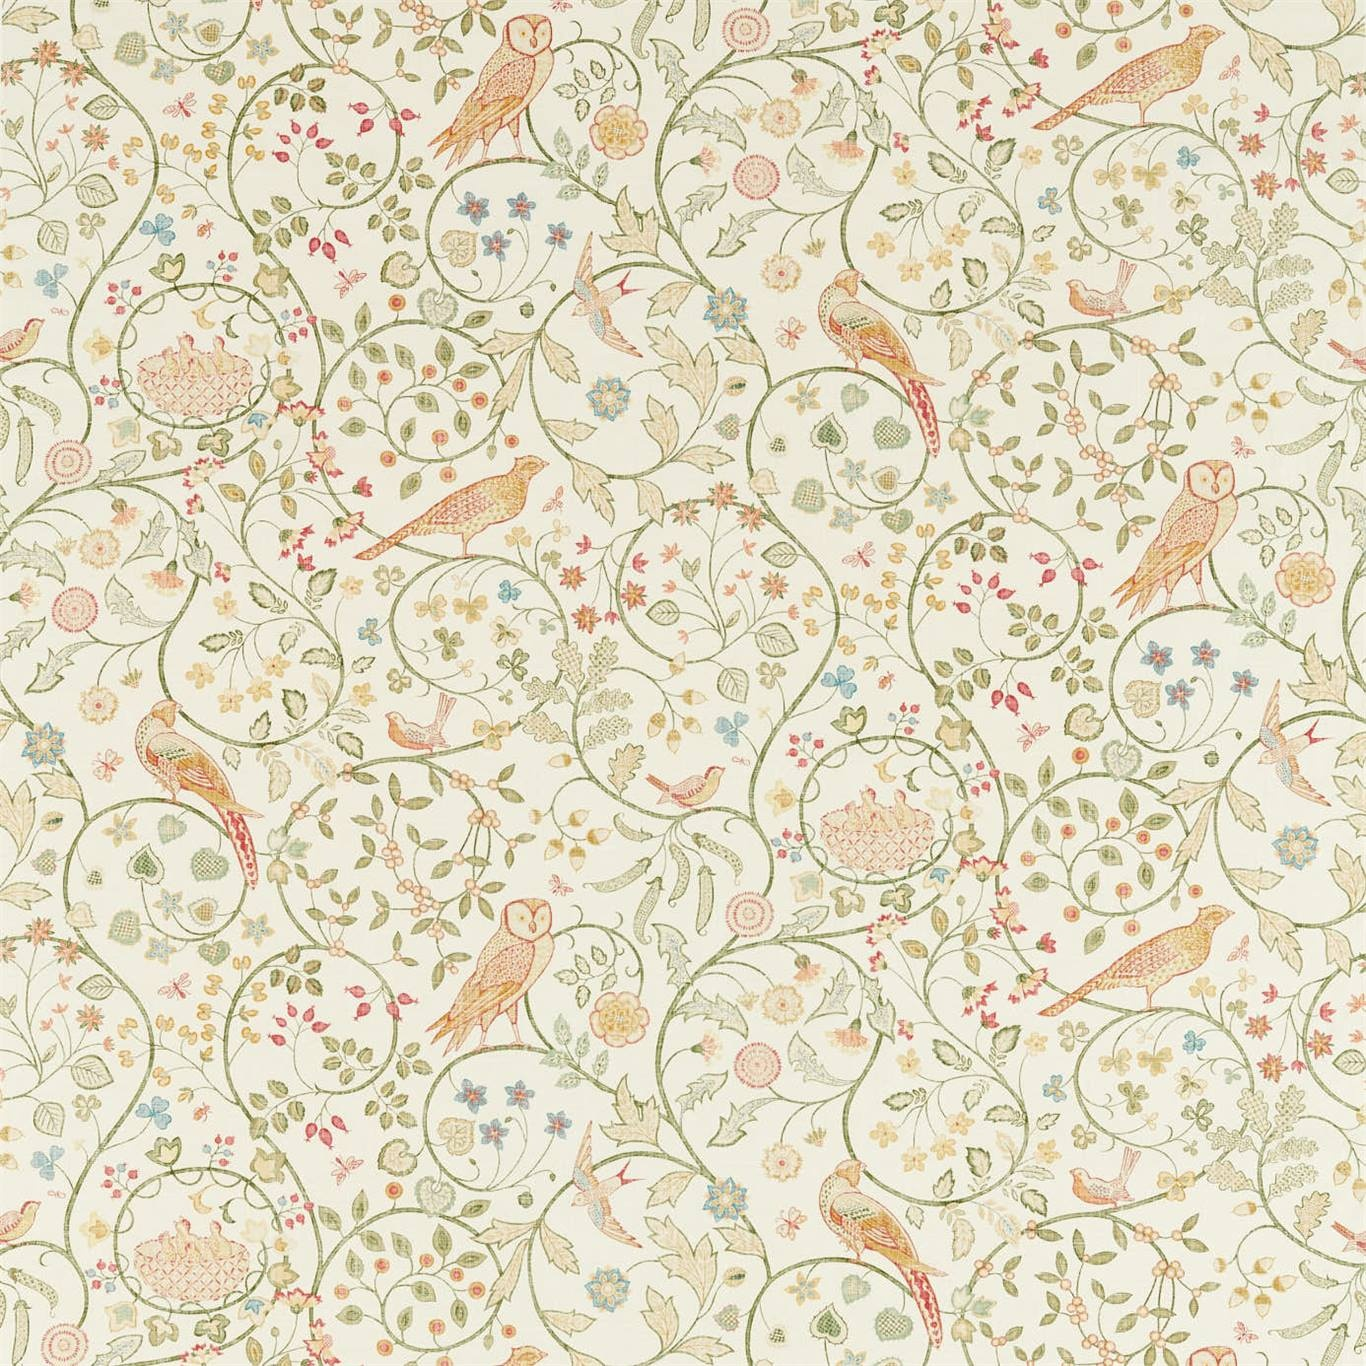 Image of Morris & Co Newill Chintz Fabric 226589